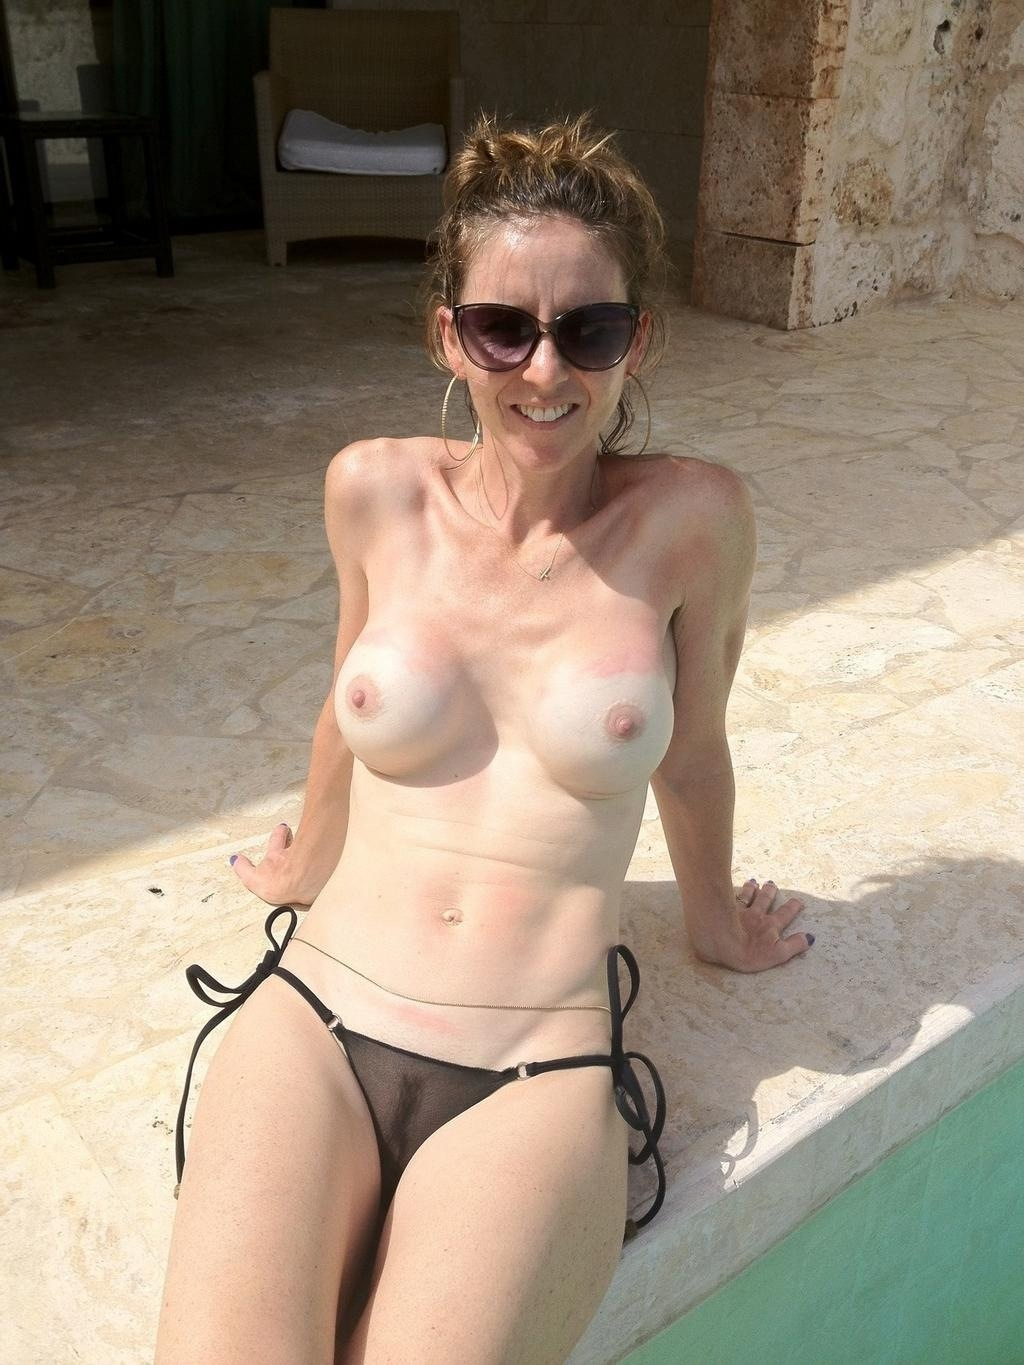 Very milf porn at the pool